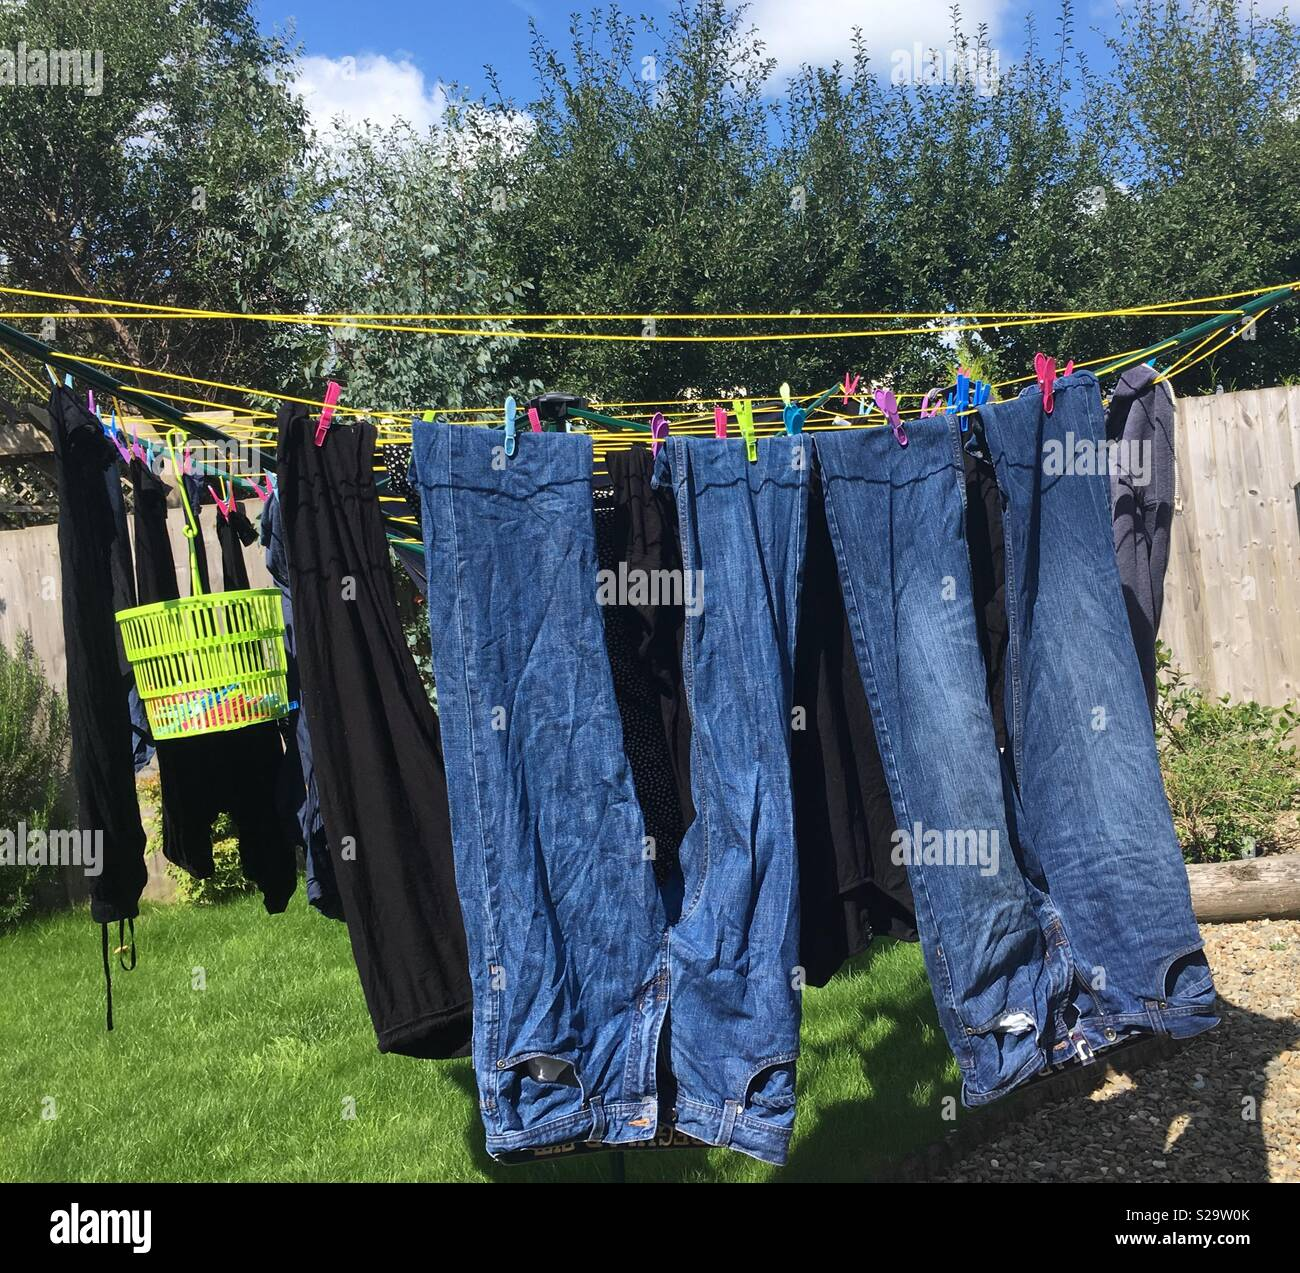 rotary clothes line stock photos rotary clothes line. Black Bedroom Furniture Sets. Home Design Ideas